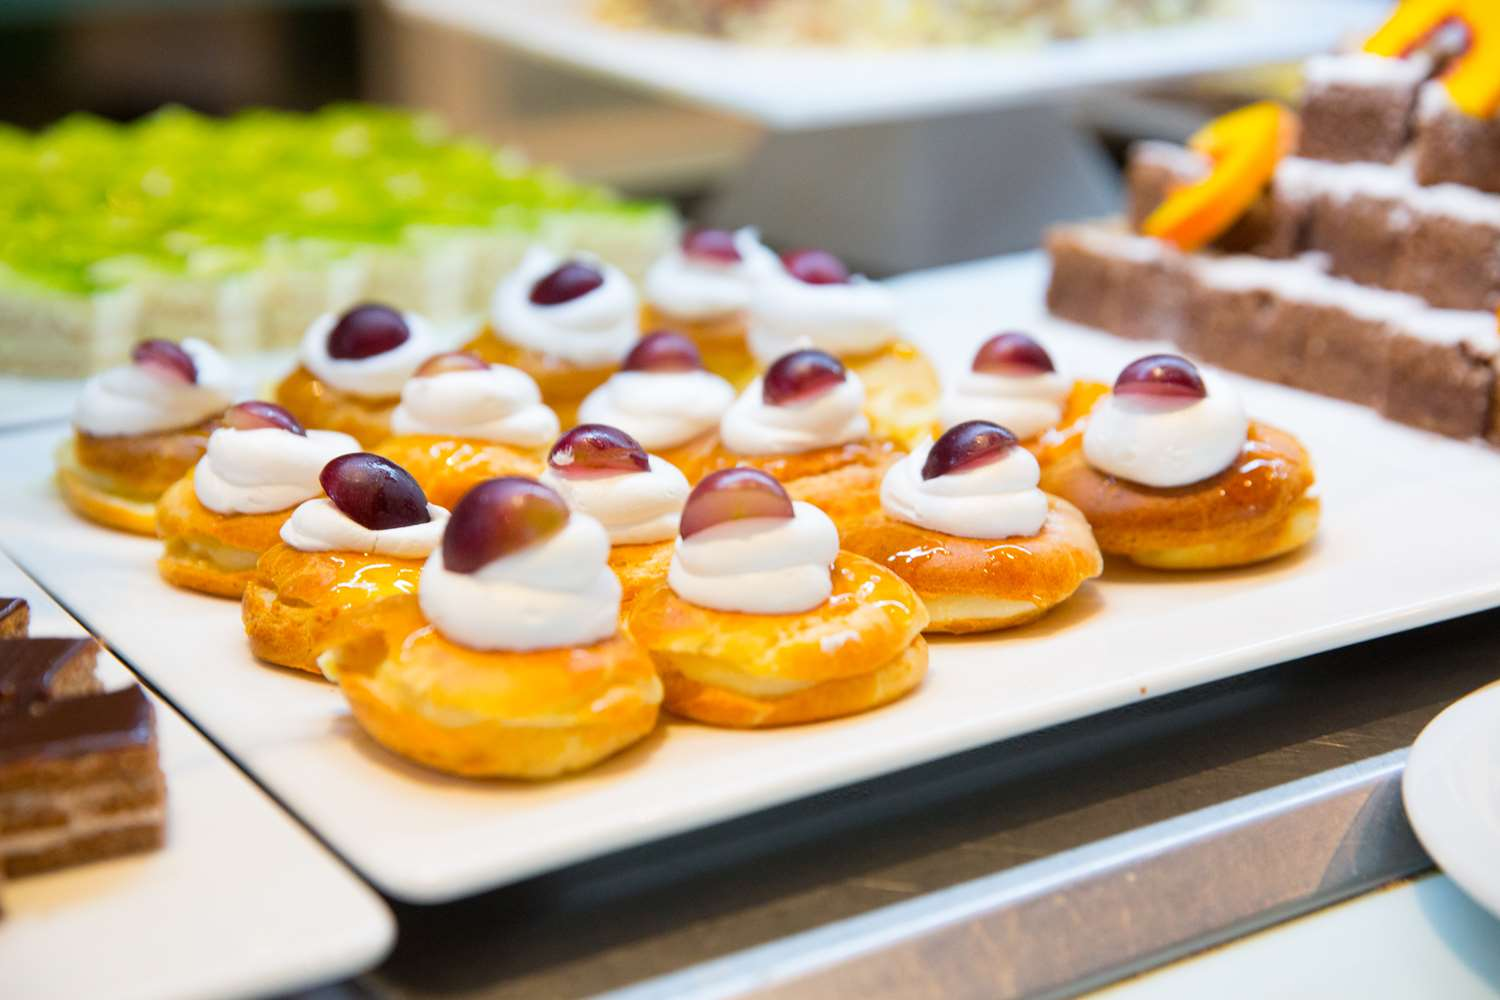 Gastronomy adapted to your event themes